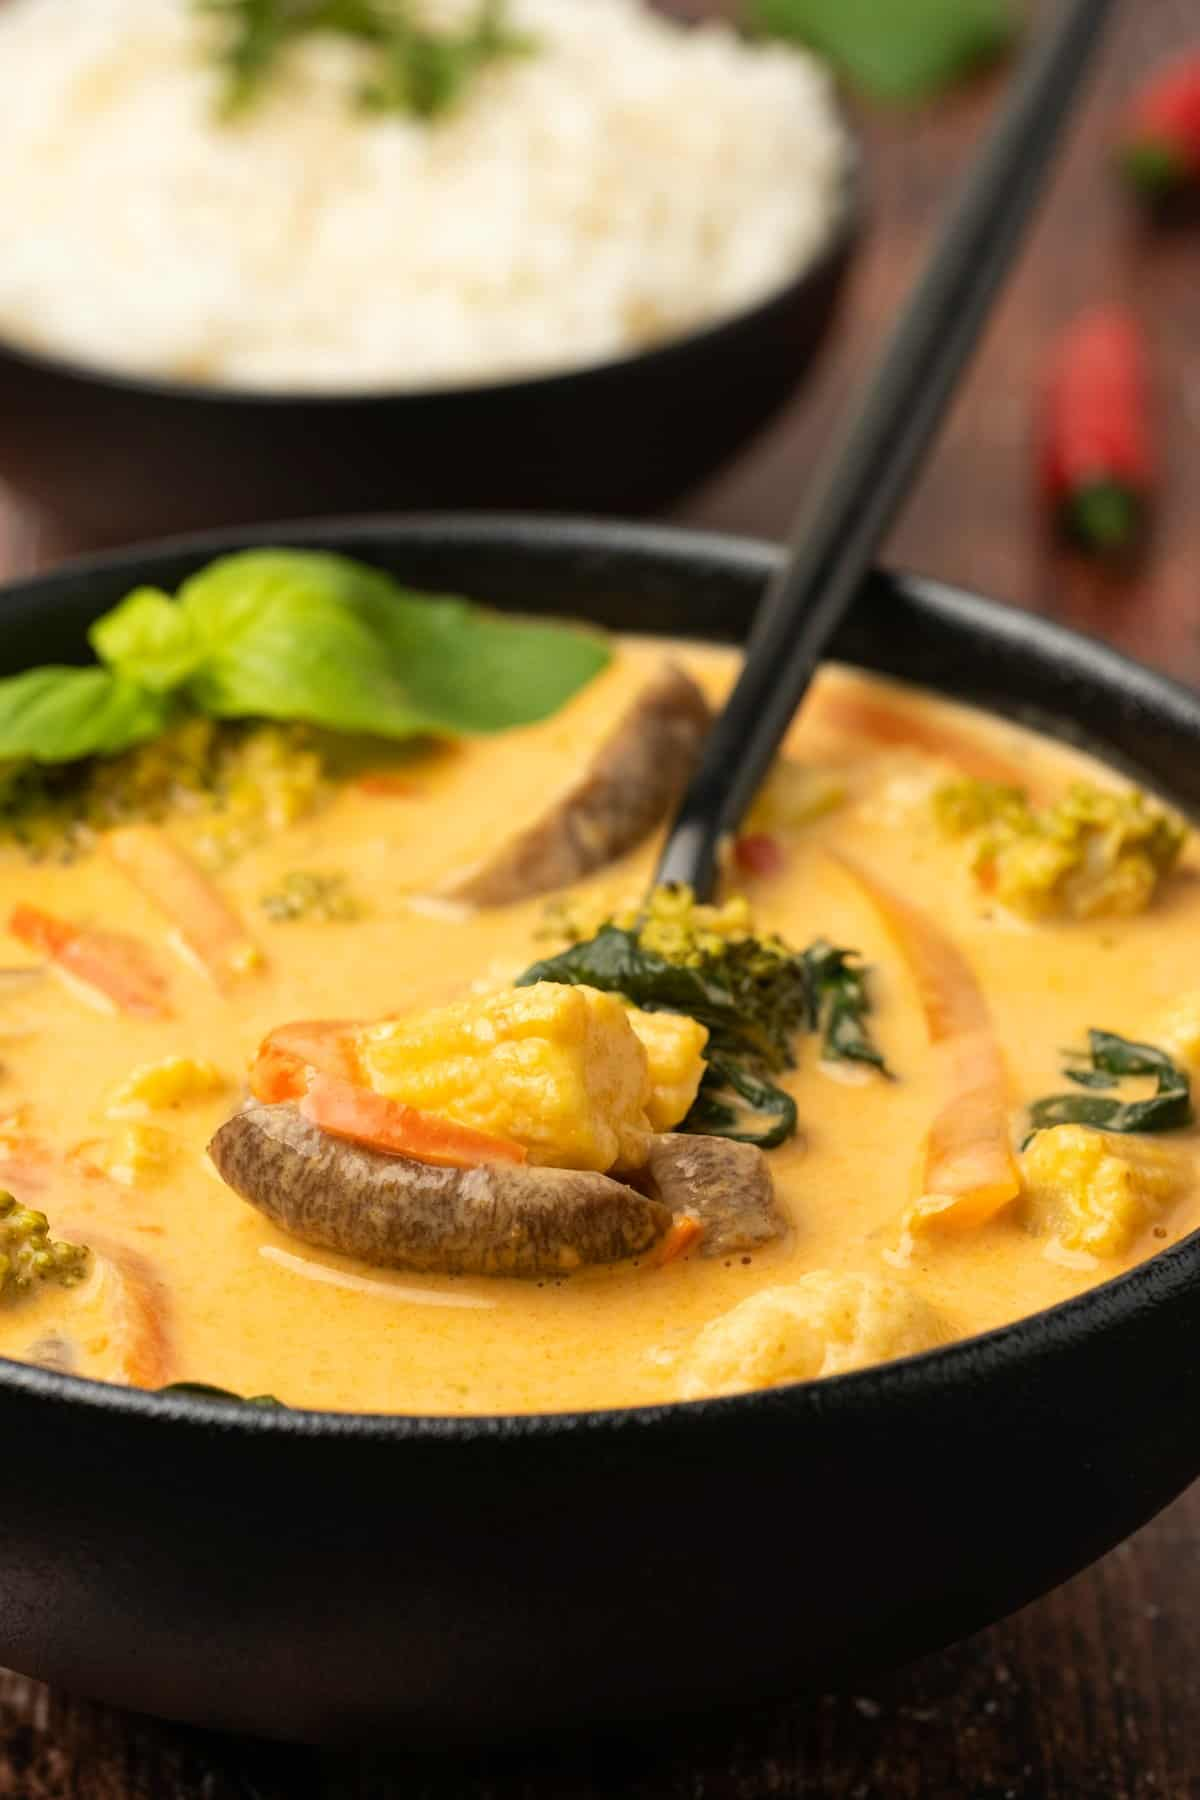 A bowl of red curry and vegetables with a spoon.